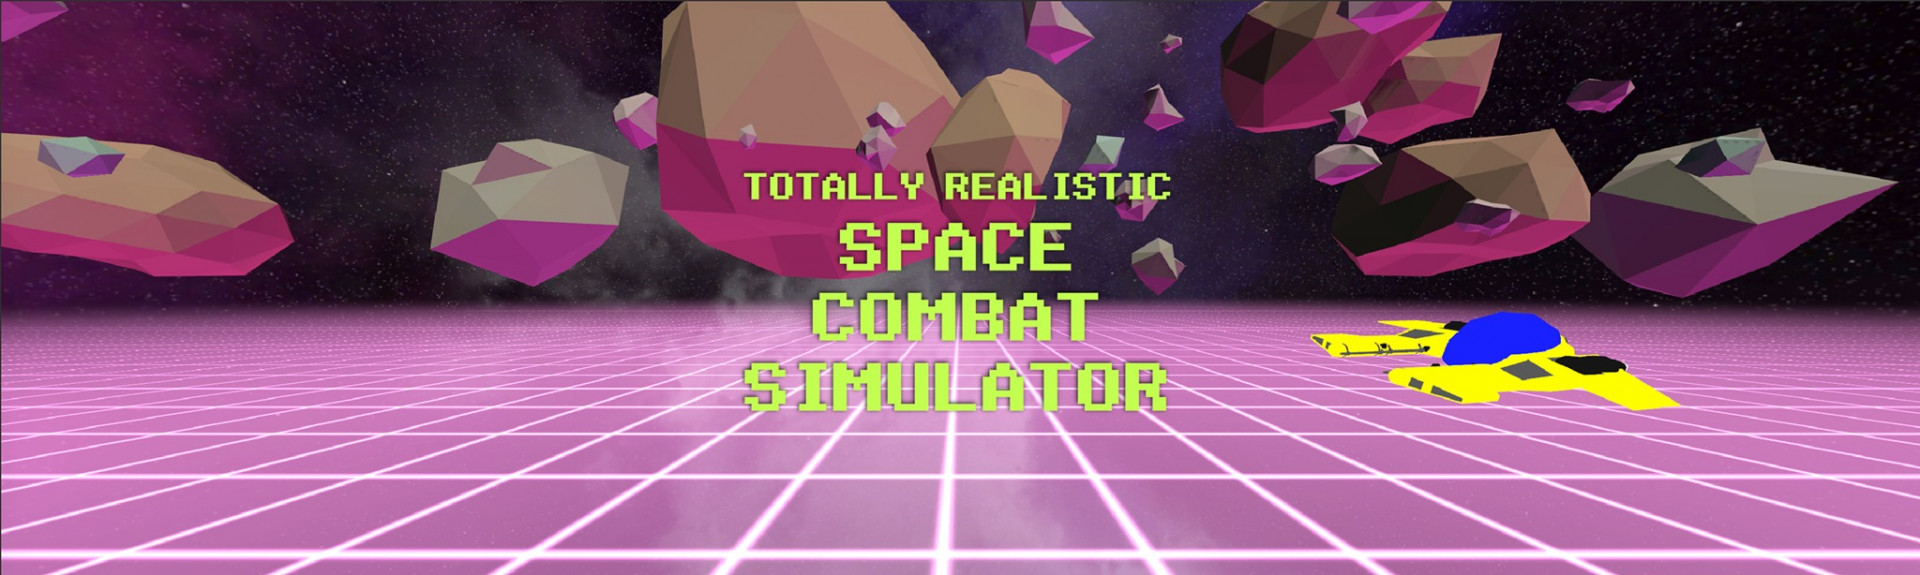 Totally Realistic Space Combat Simulator